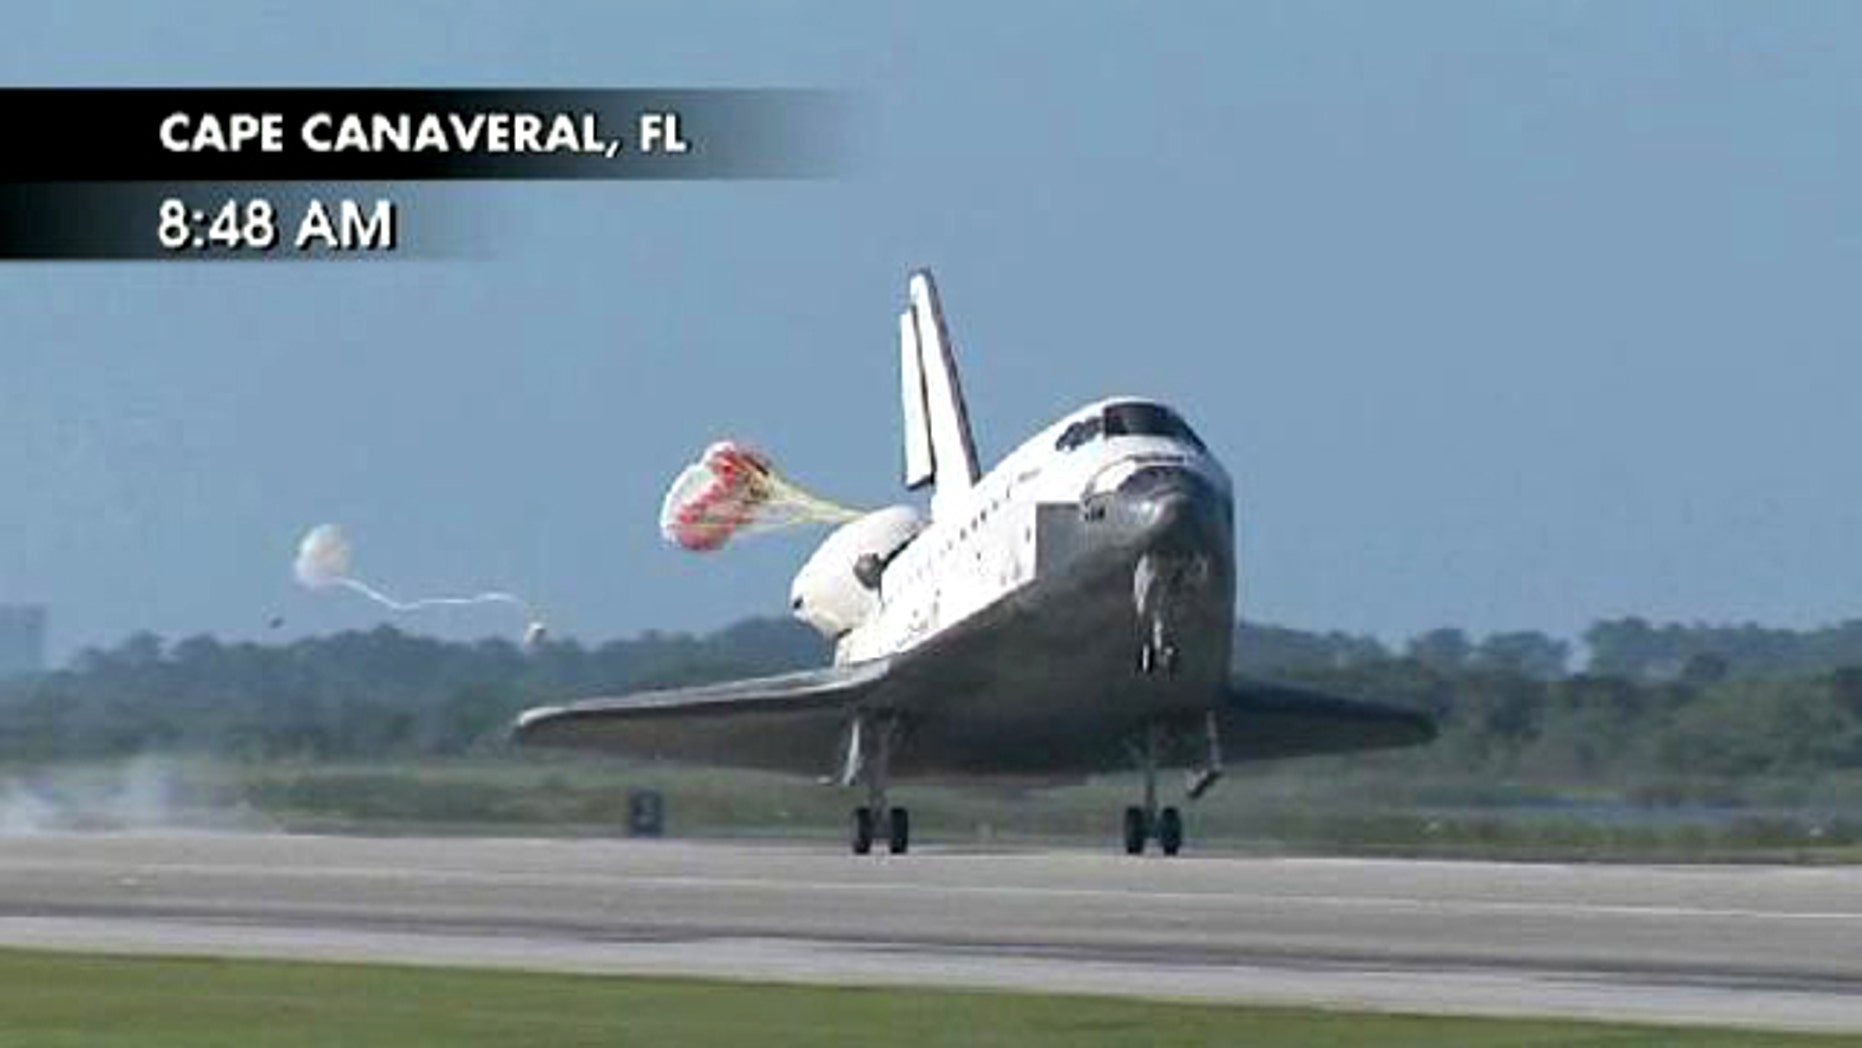 Atlantis touches down at Kennedy Space Center in Florida, concluding its final mission to the International Space Station.